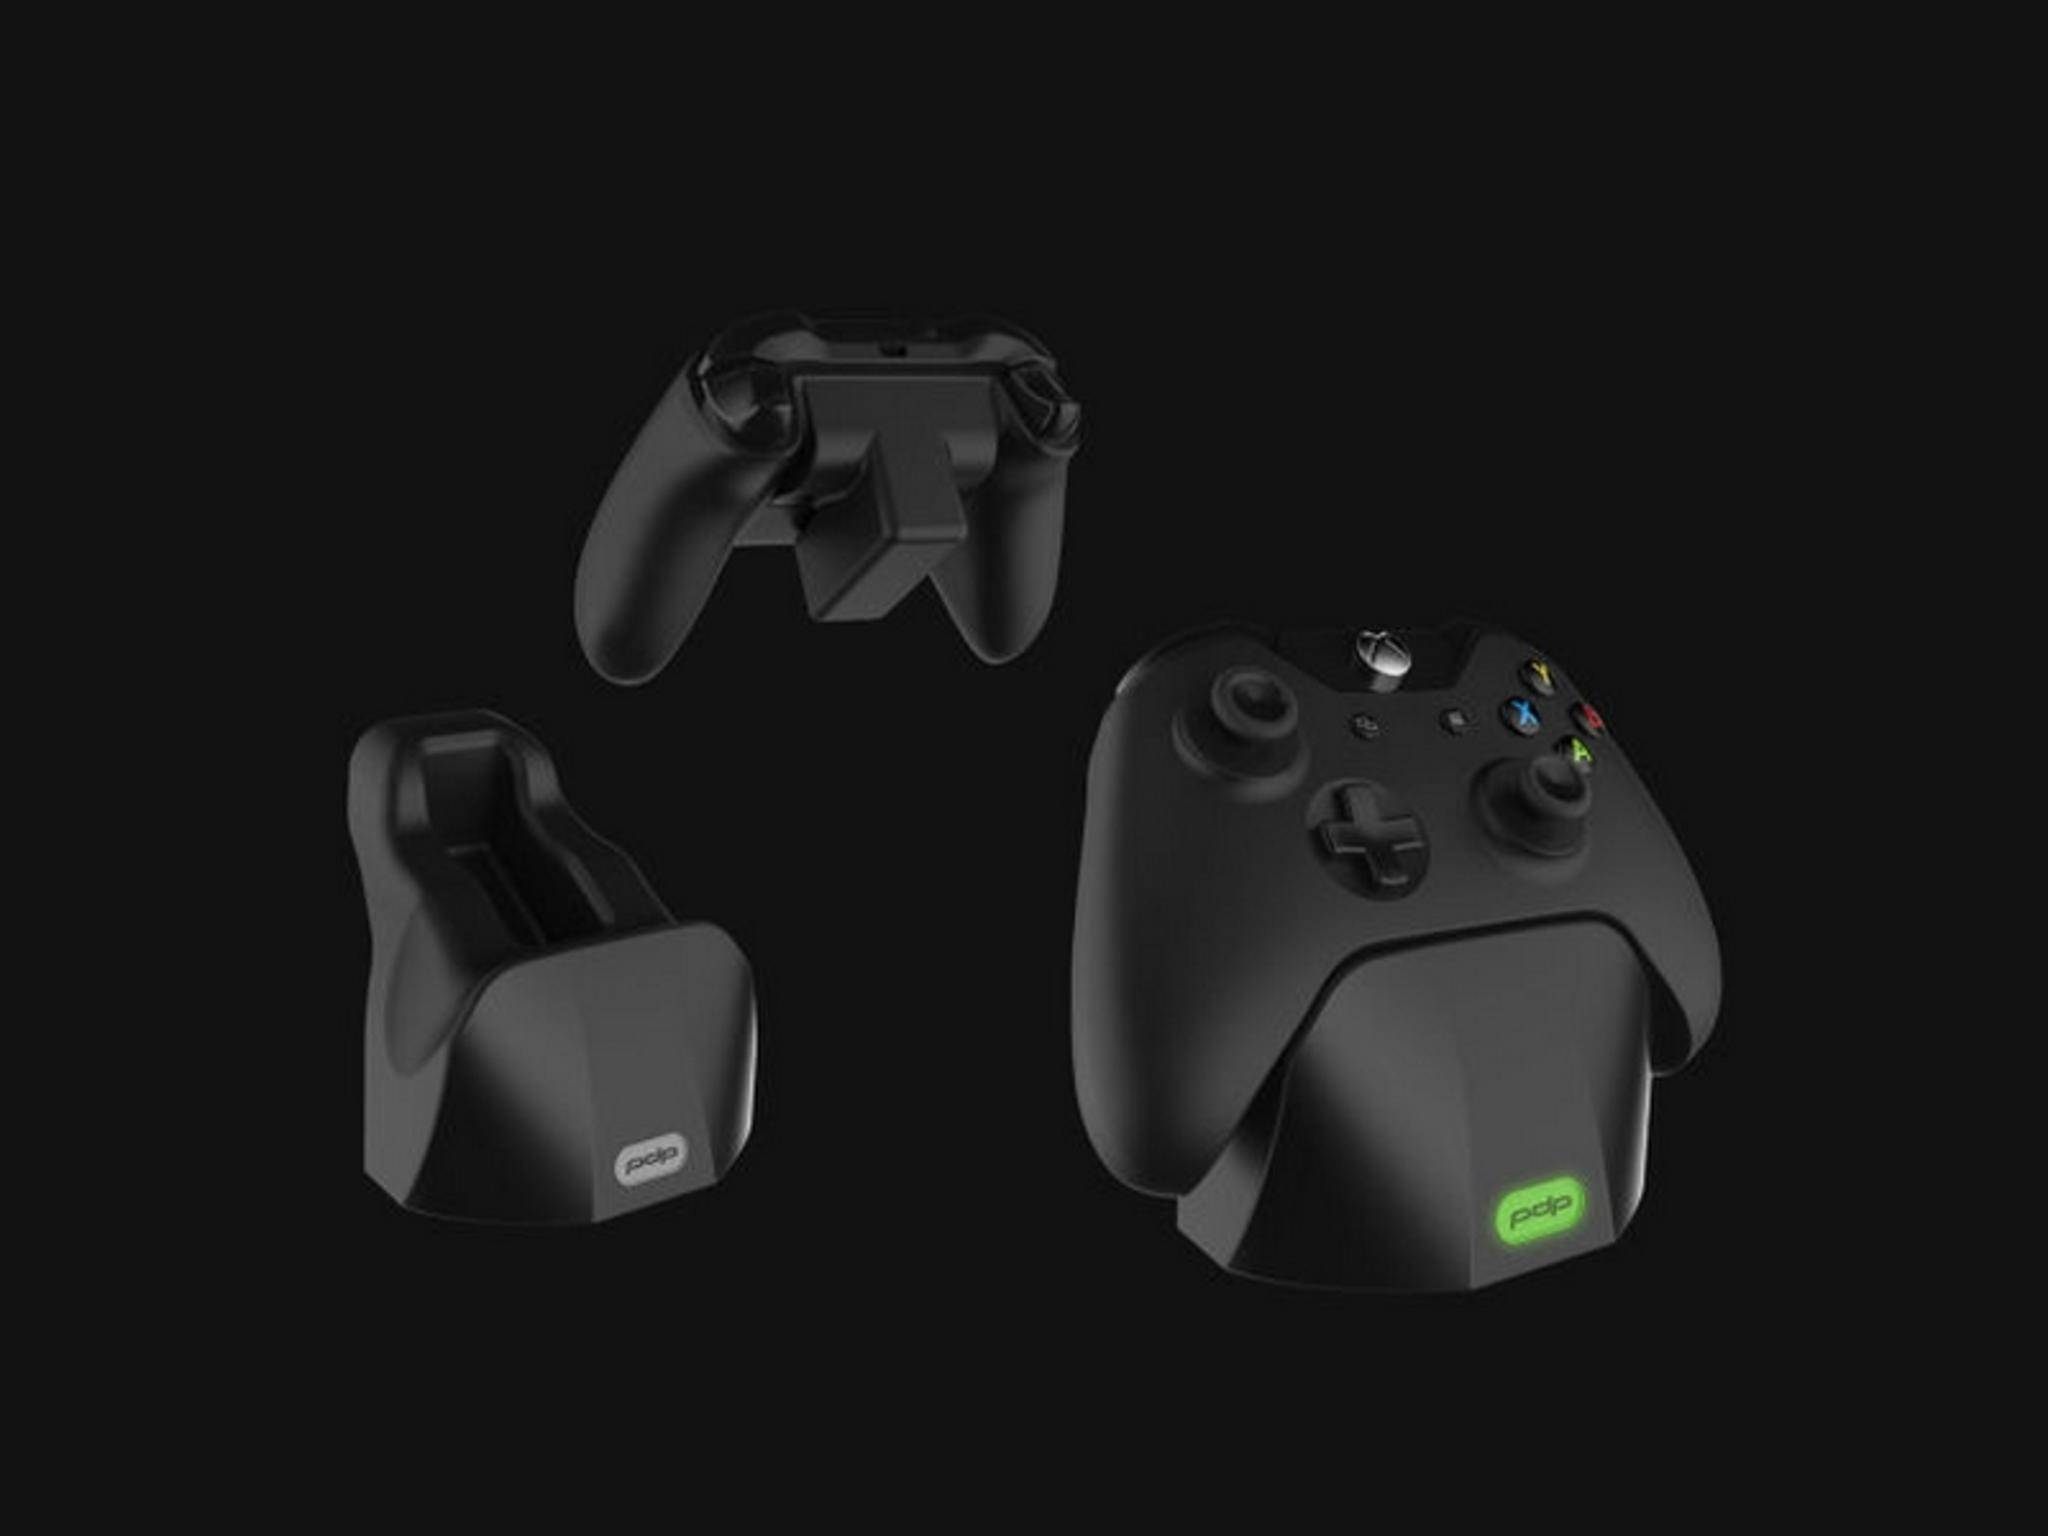 Der Super Charger soll den Xbox One-Controller in Windeseile aufladen.